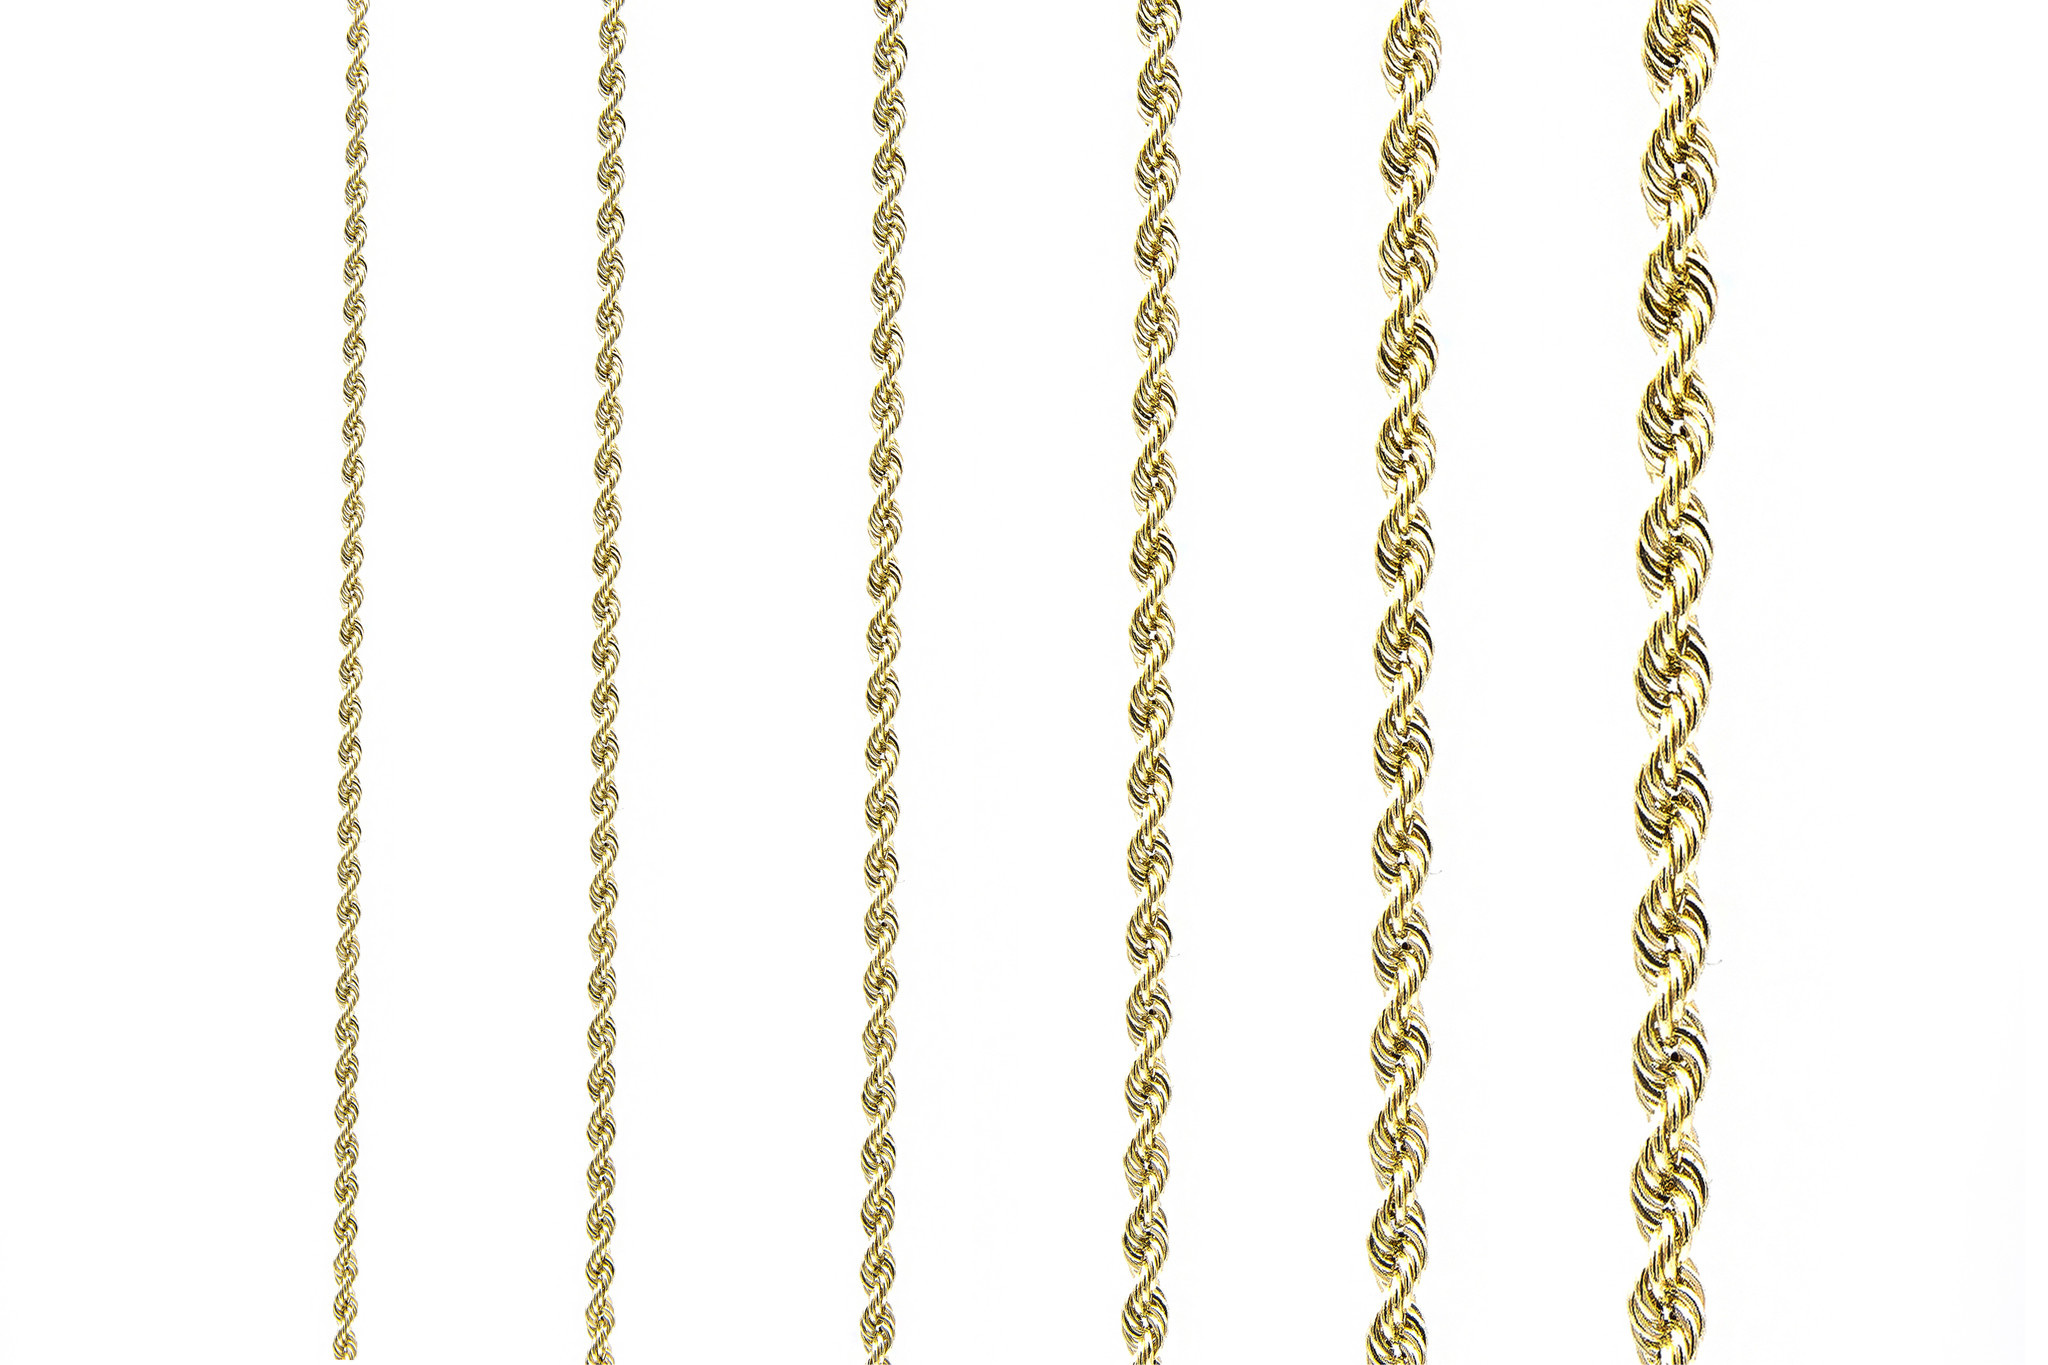 Rope Chain NL 18k-5 mm-3